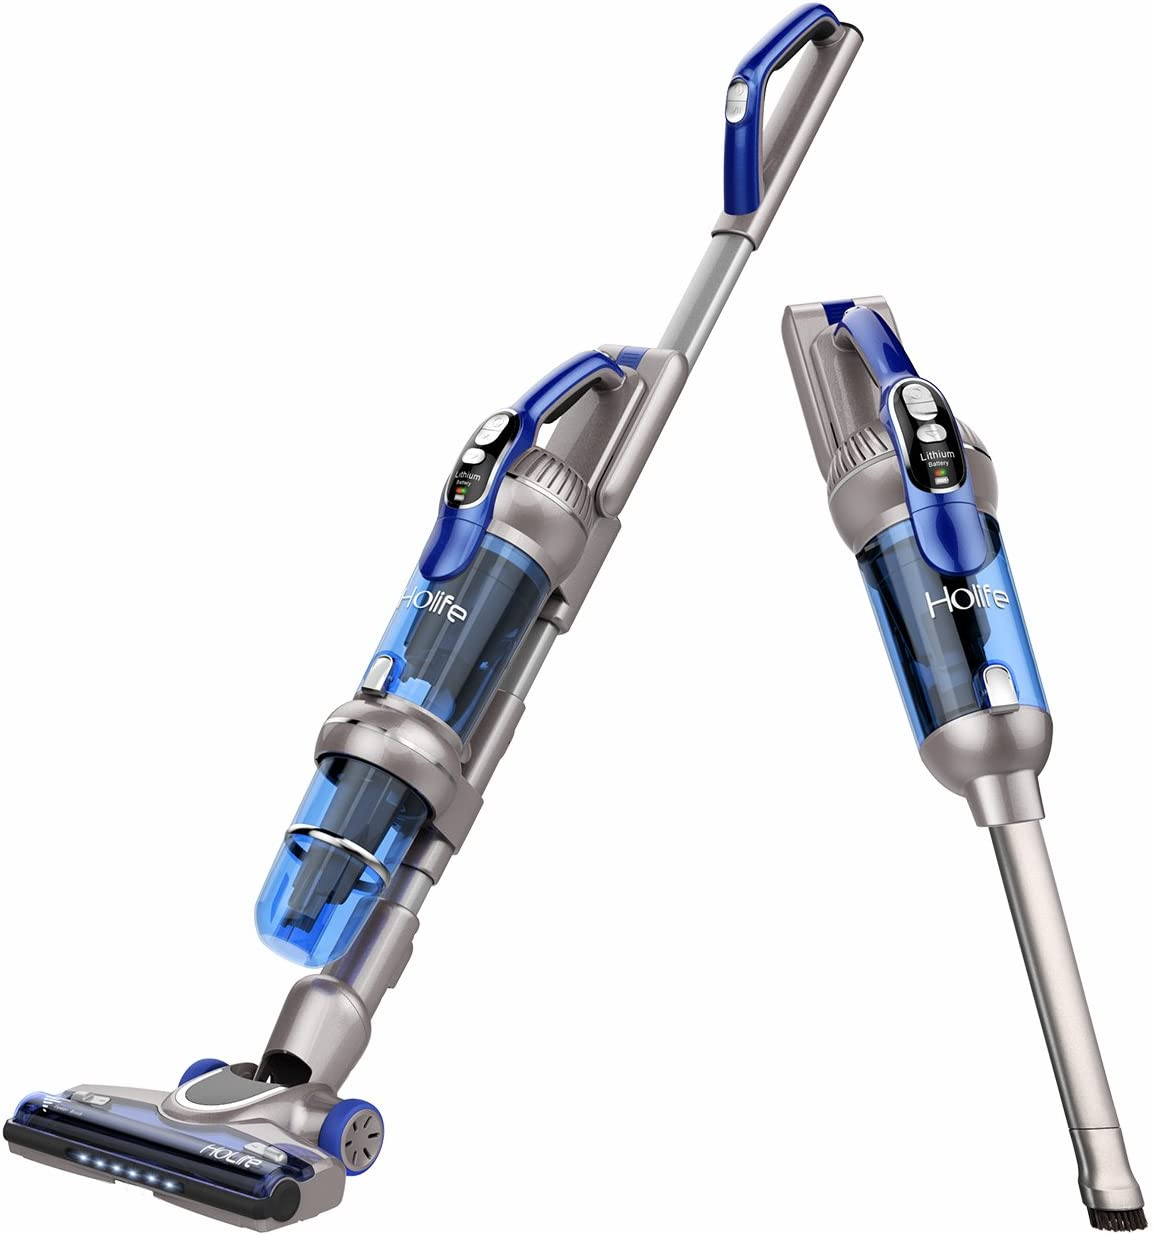 Holife 20Kpa Cordless Stick Vacuum Cleaner, 2-in-1 Powerful Upright & Handheld Vacuum Rechargeable, 380W Lightweight Hand Vacuum Bagless with LED Brush for Home Carpet Pet Cat Hair Floor